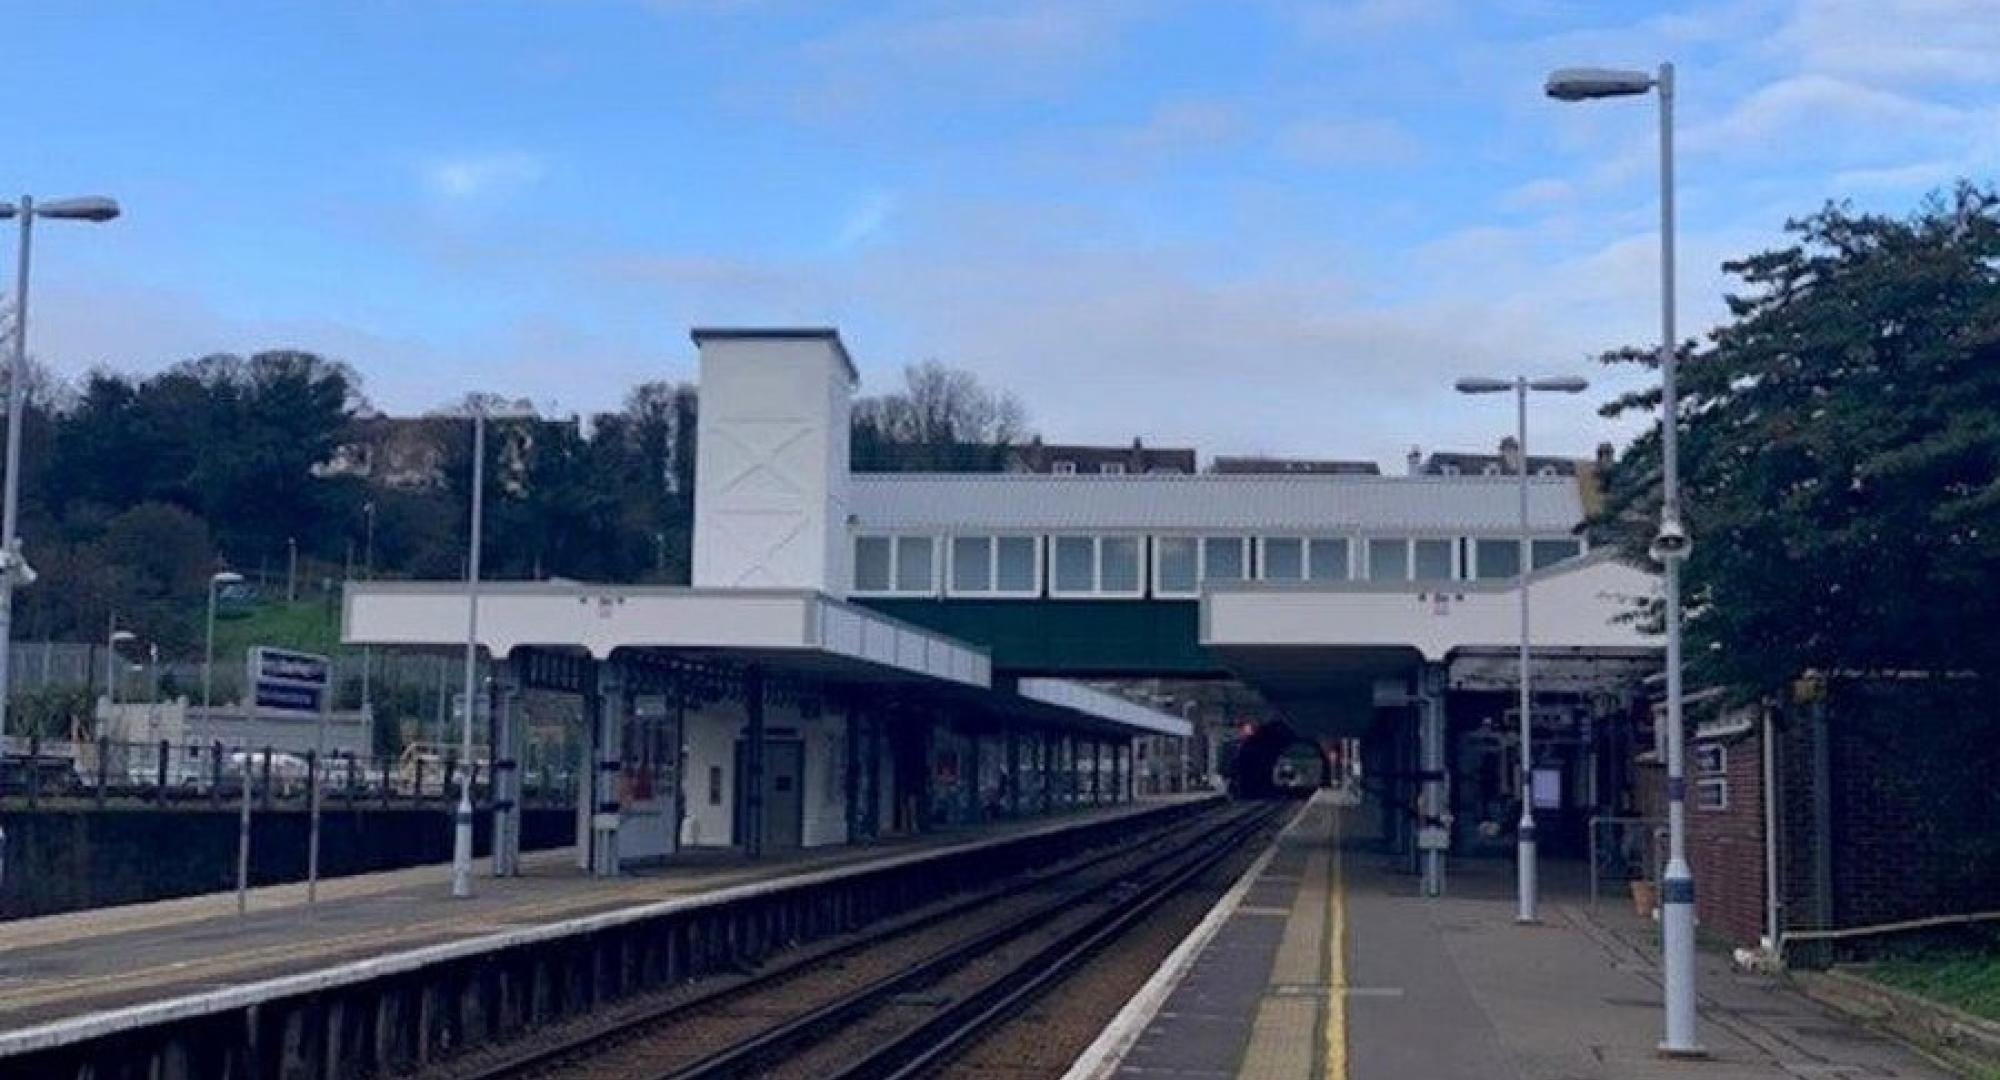 Footbridge at Dover Priory station